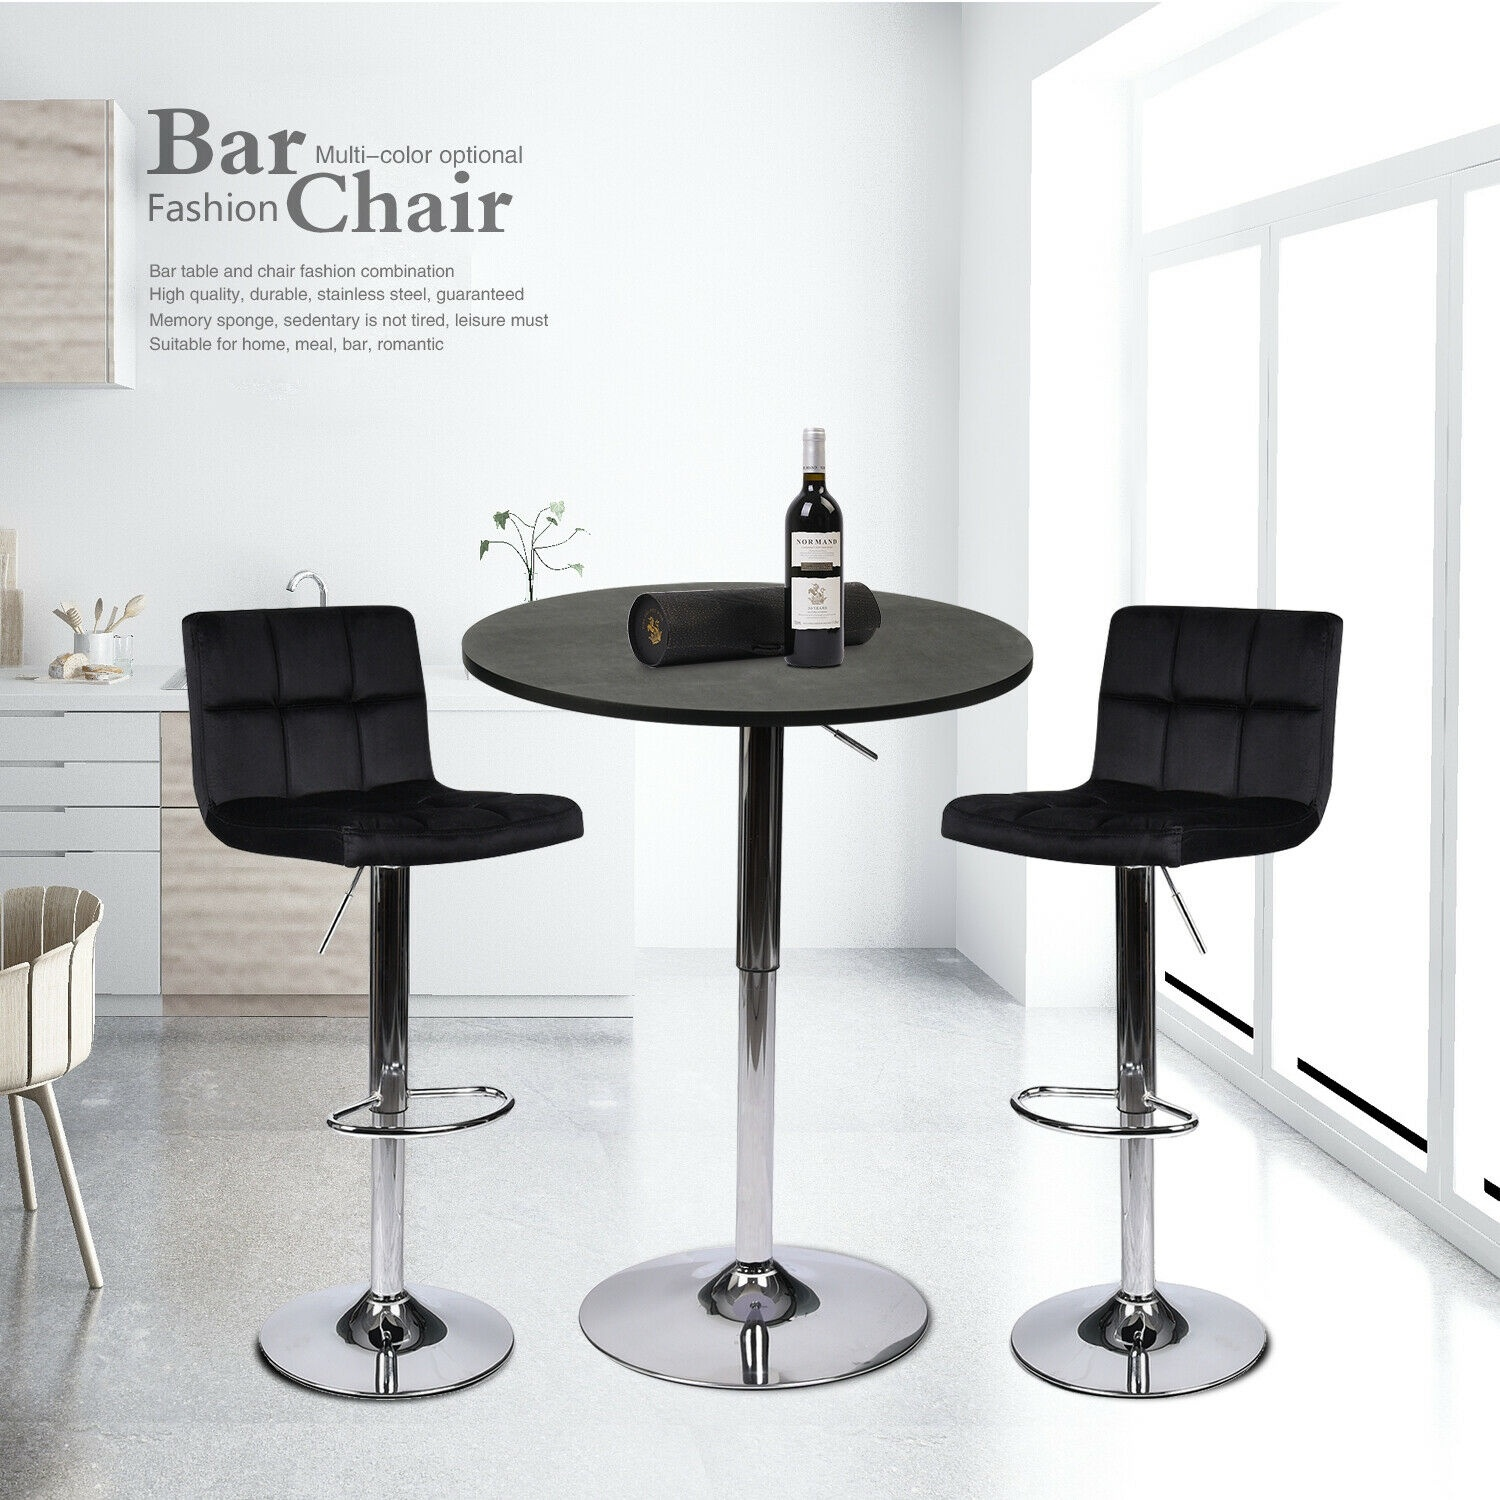 3 Piece Bar Table Stools Set Counter Height Swivel Dining Chair Pub Bistro Combo